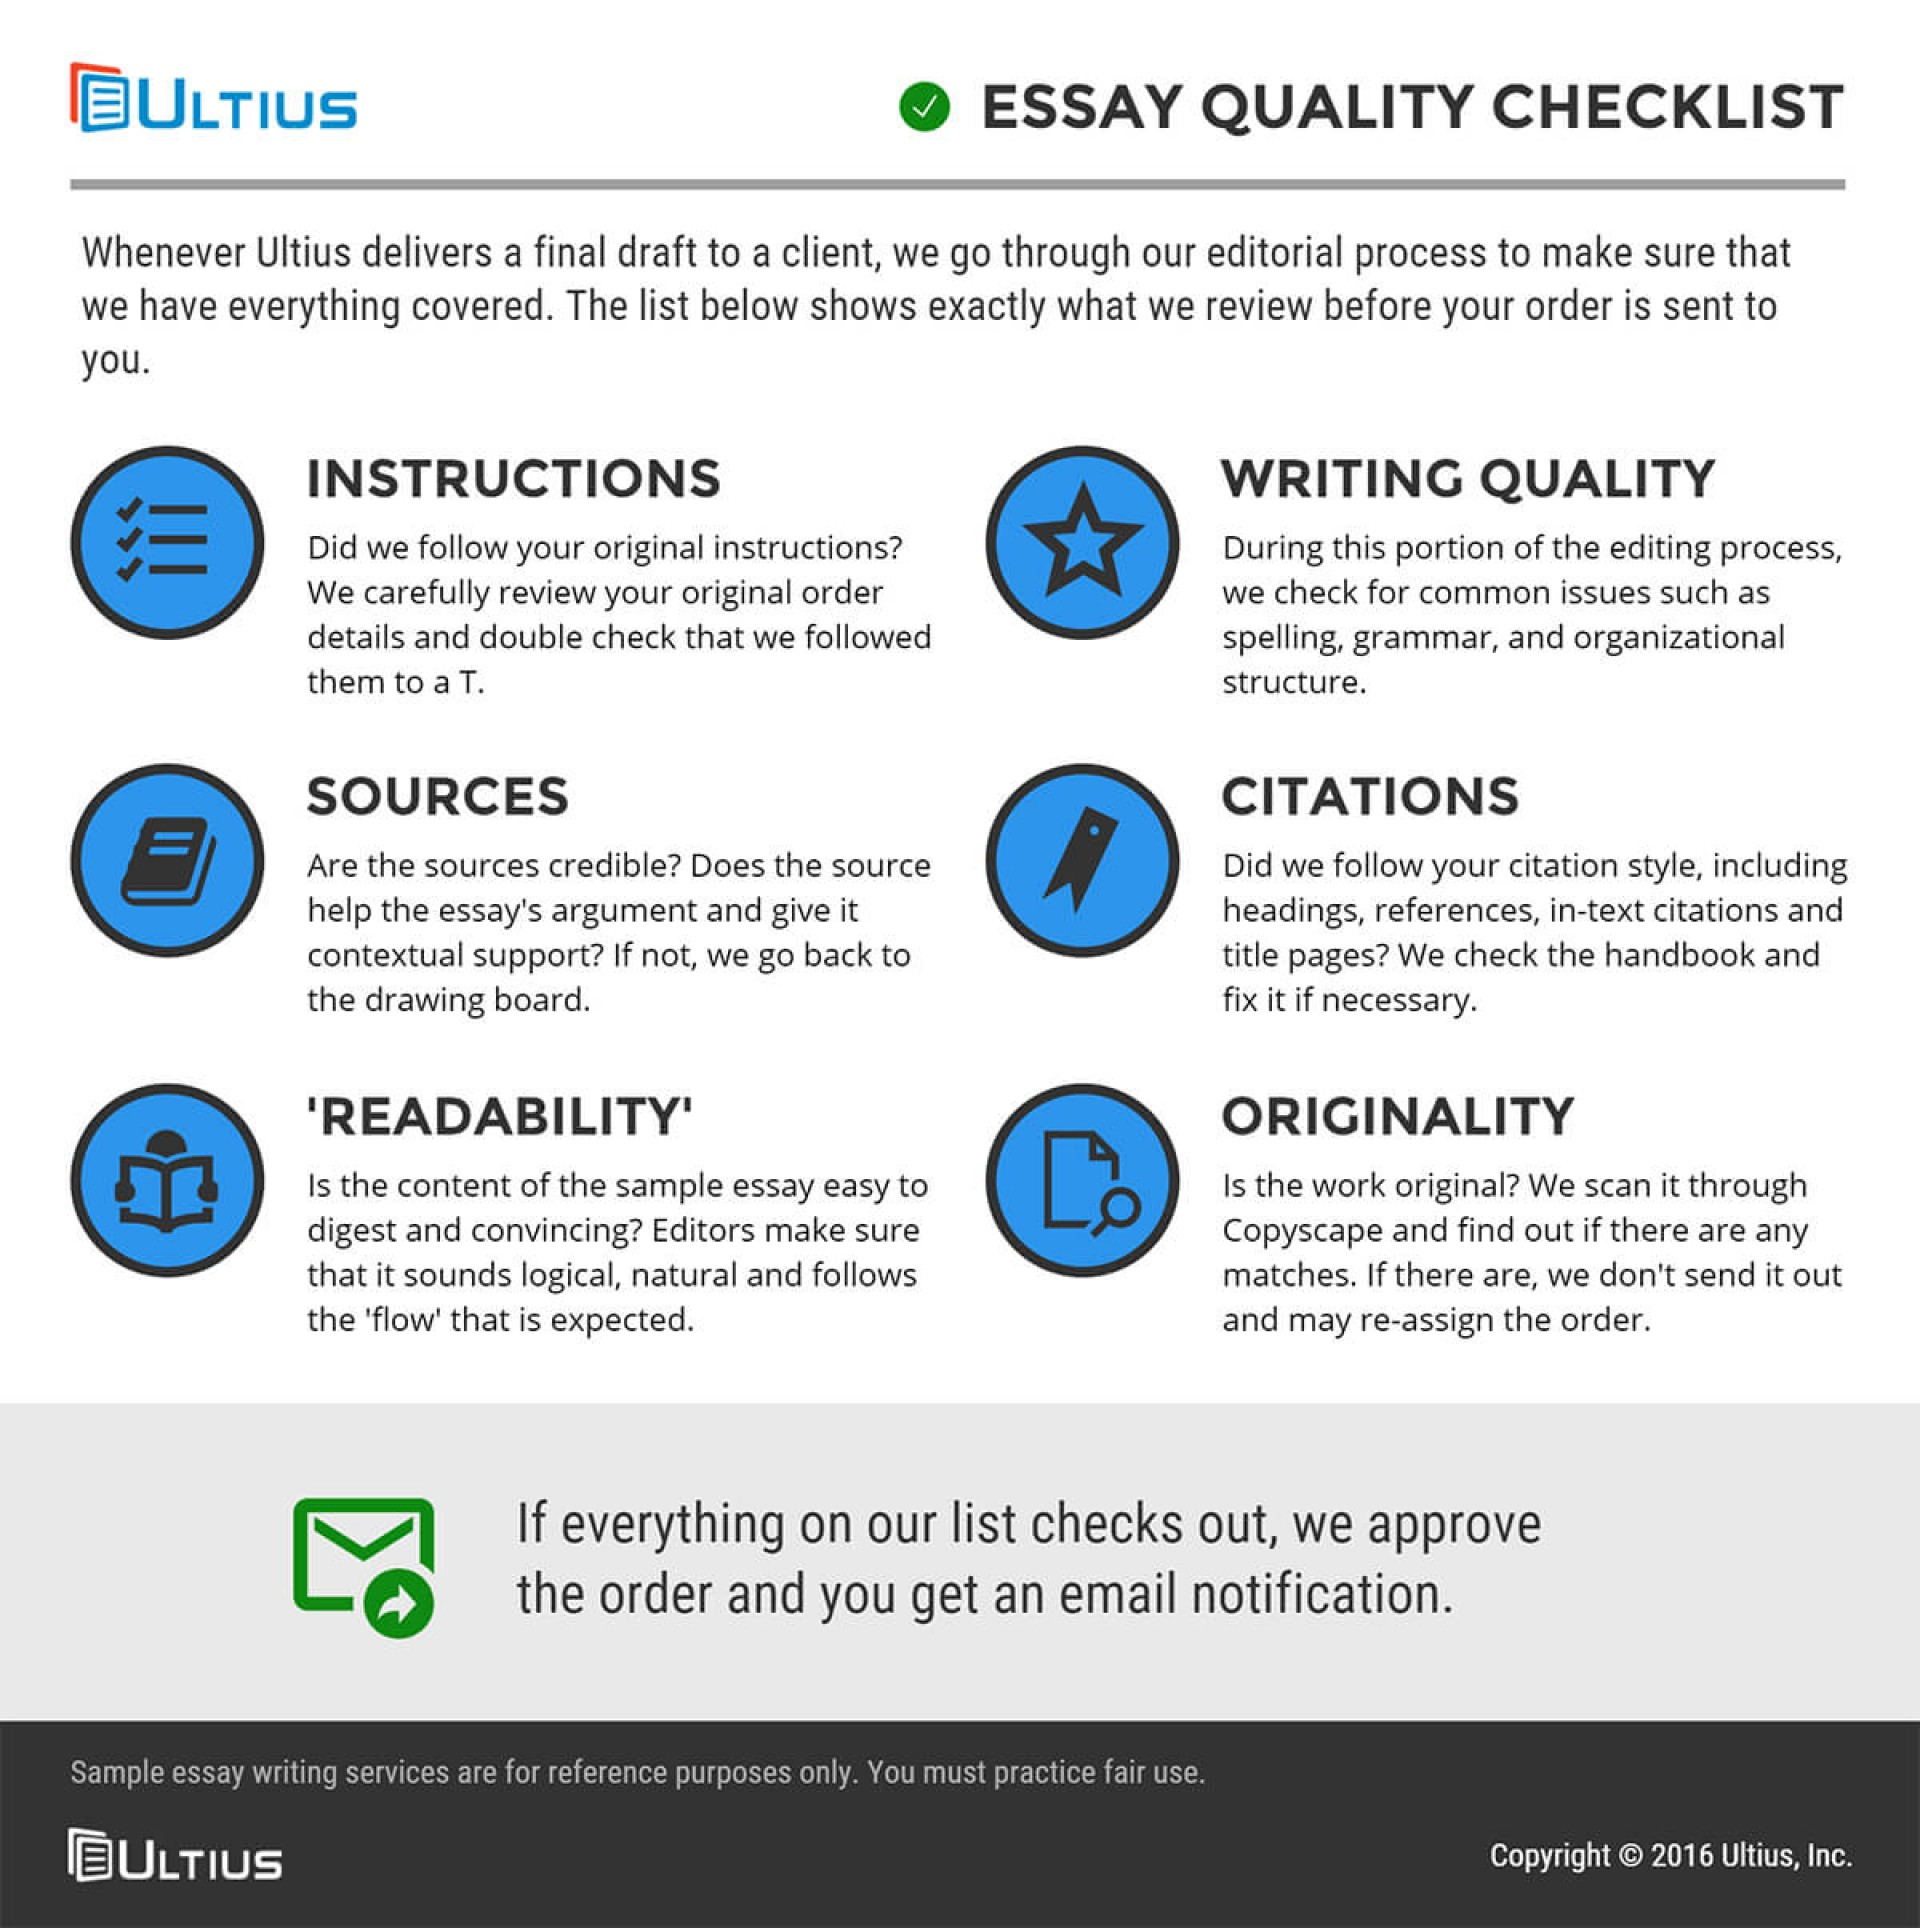 001 Buy An Essay Quality Checklist Best Argumentative Essays Online No Plagiarism Uk Now 1920